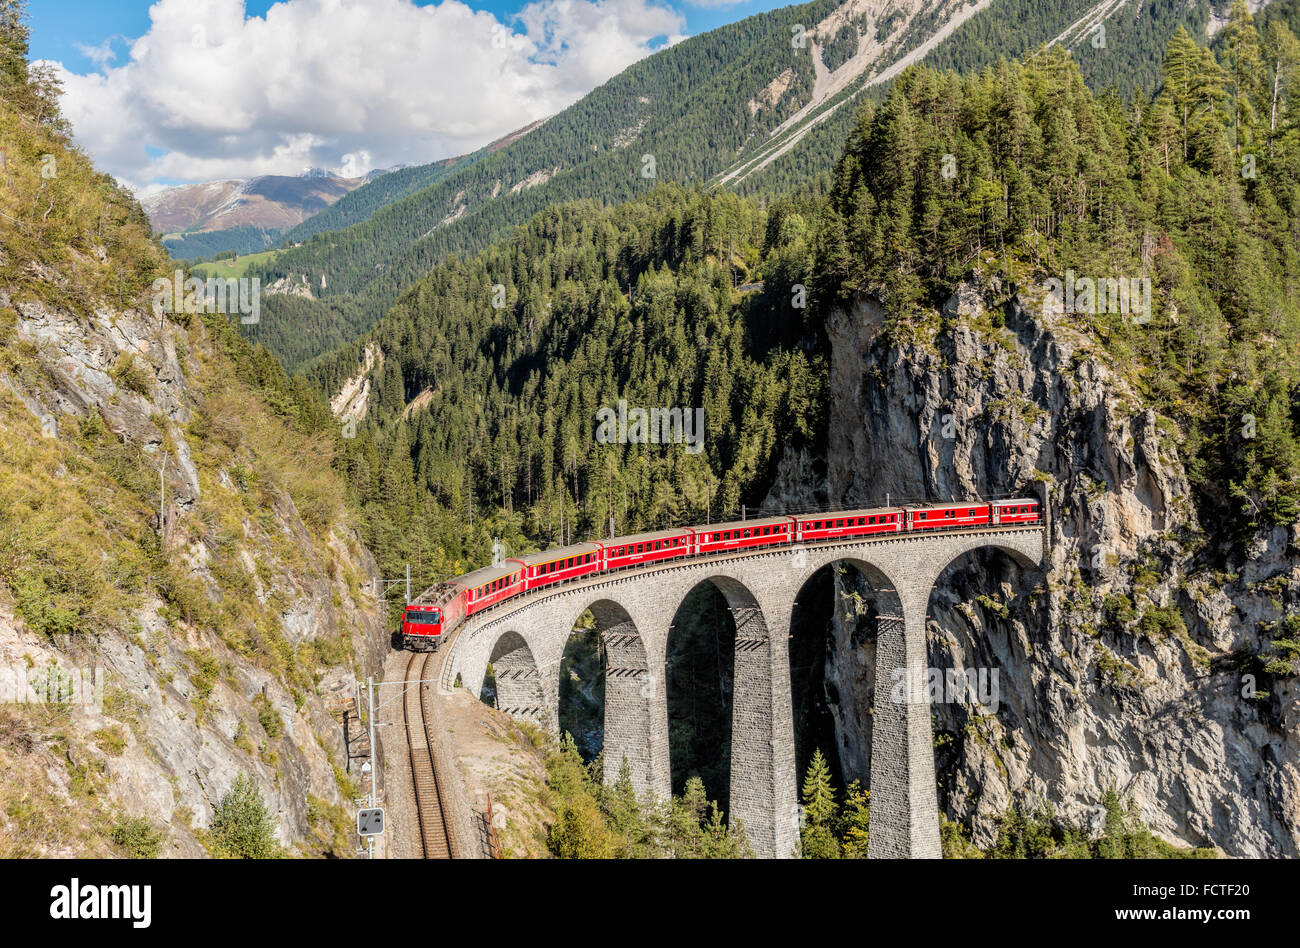 Glacier Express at the Landwasser Viaduct at Swiss Alps, Switzerland | Glacier Express auf Landwasser Viadukt, Schweiz - Stock Image